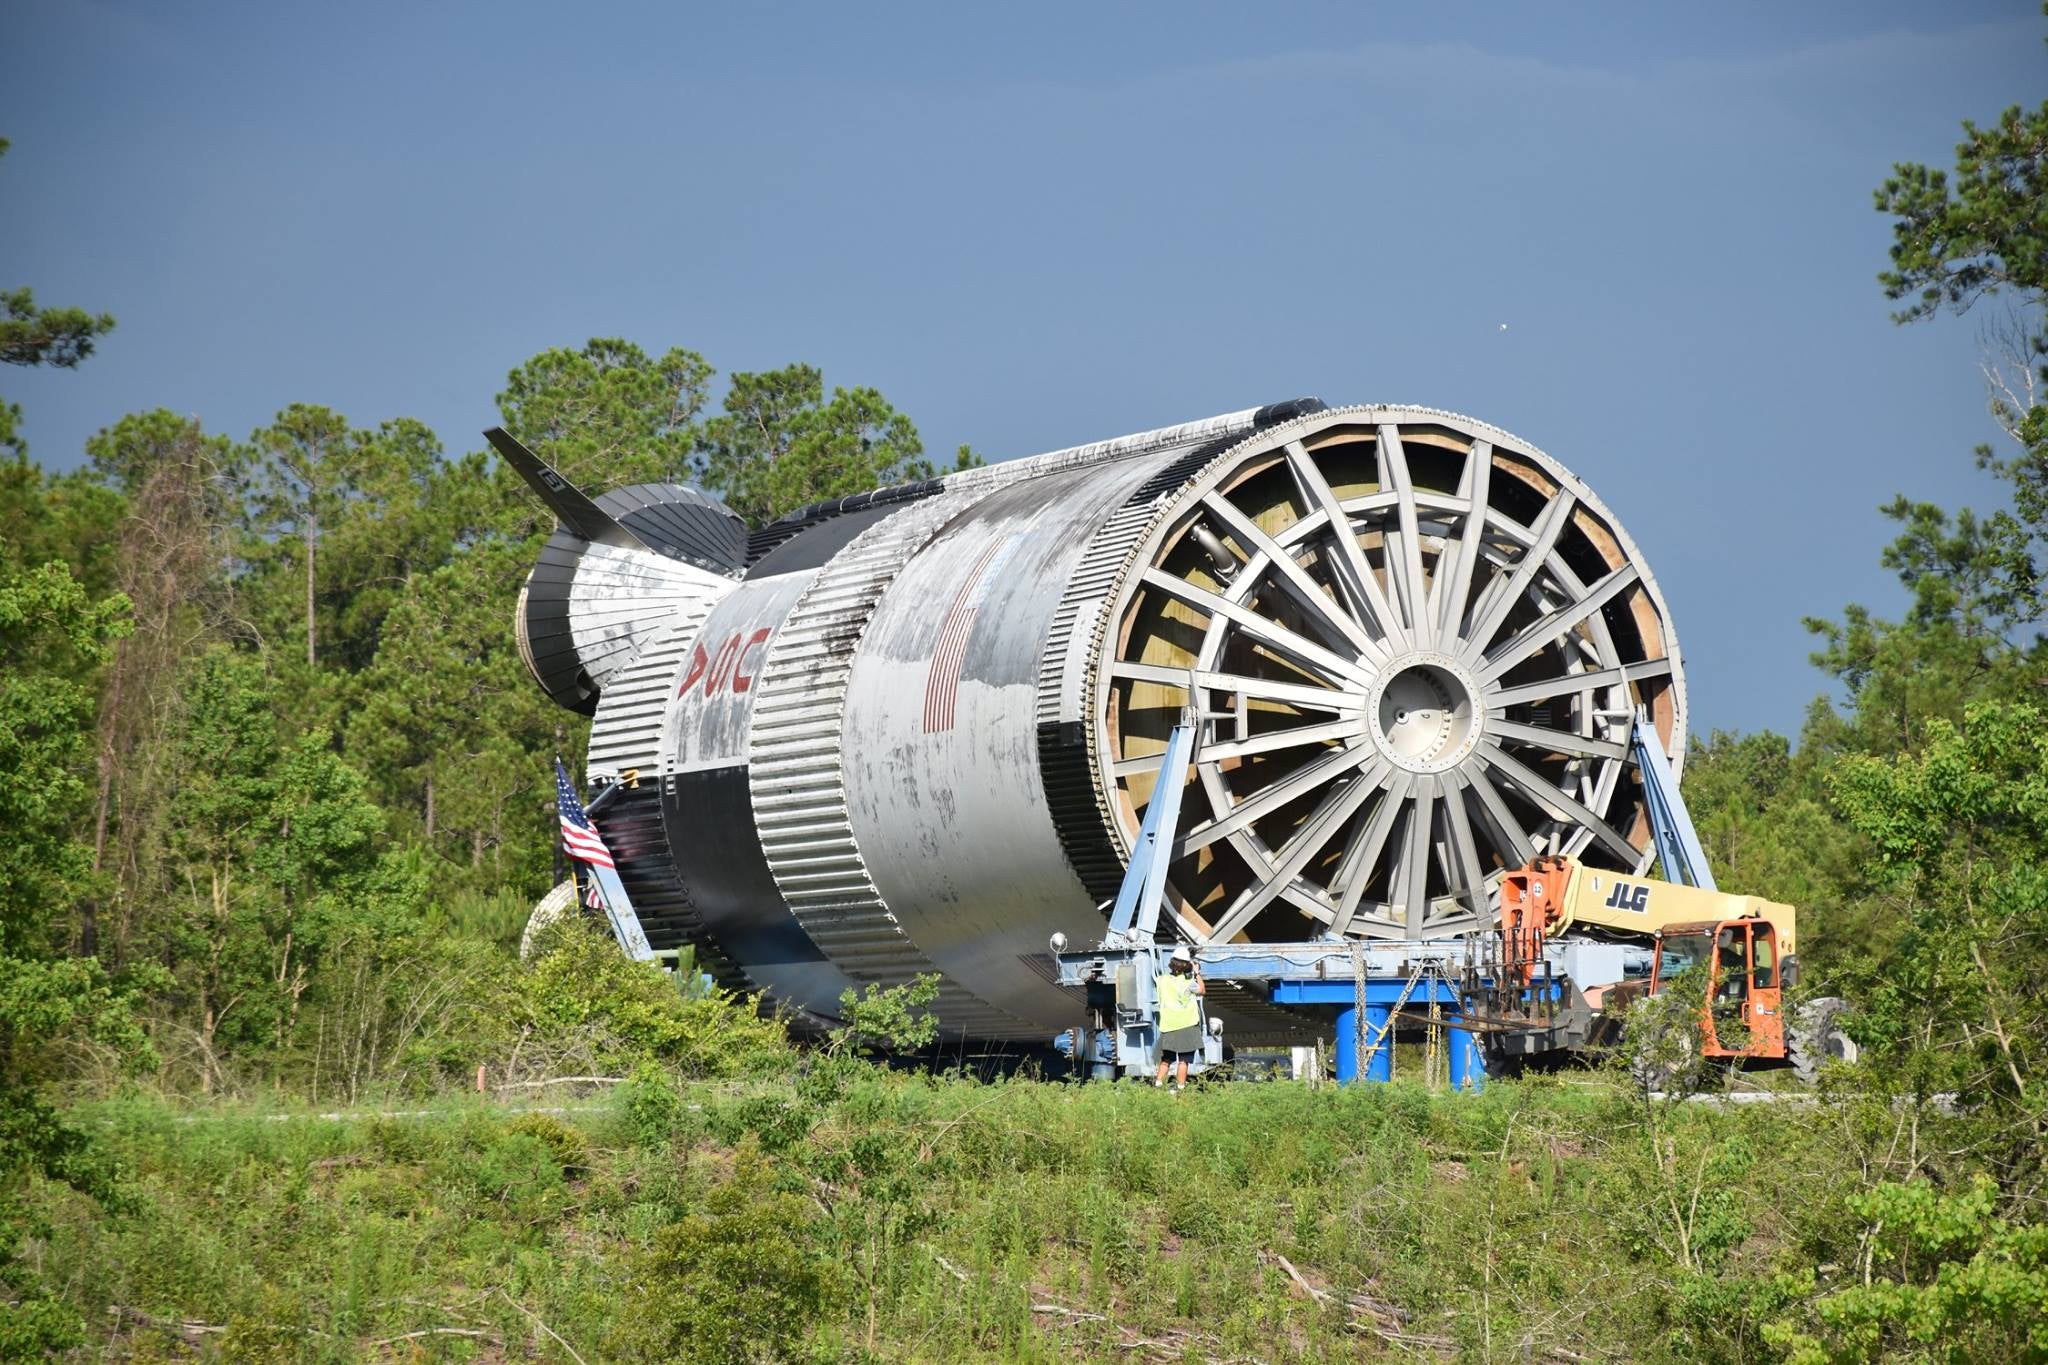 NASA's Last Apollo Saturn V Rocket Is On Its Way To Mississippi Instead Of The Moon